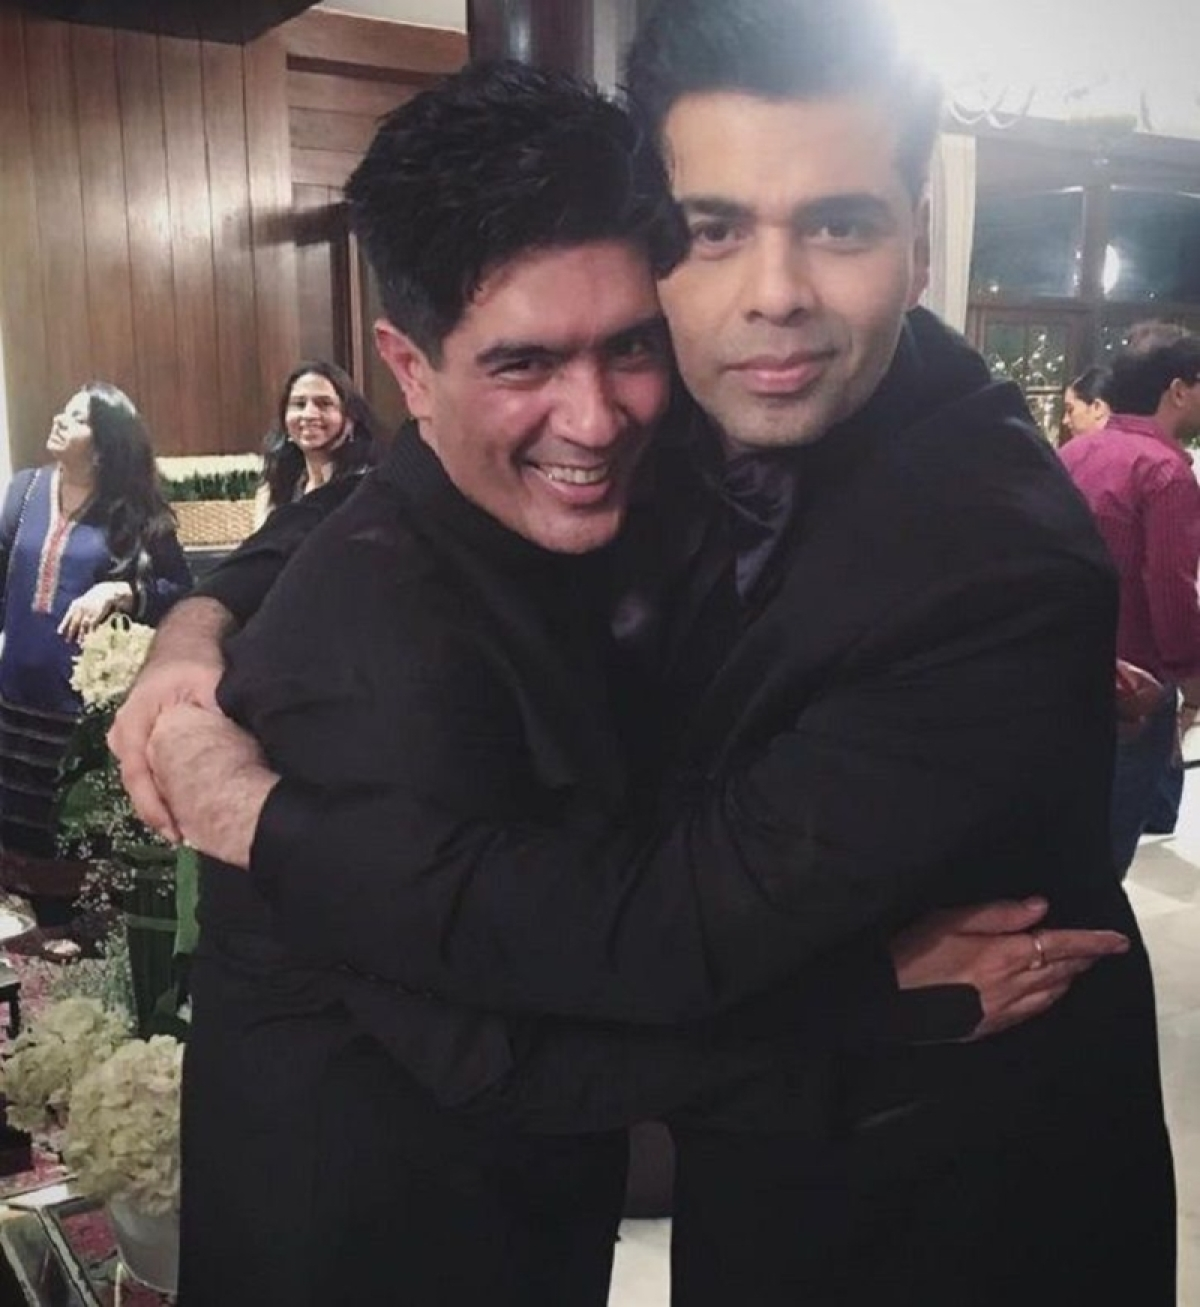 Did Manish Malhotra confirm 'relationship' with Karan Johar? Read story to find out